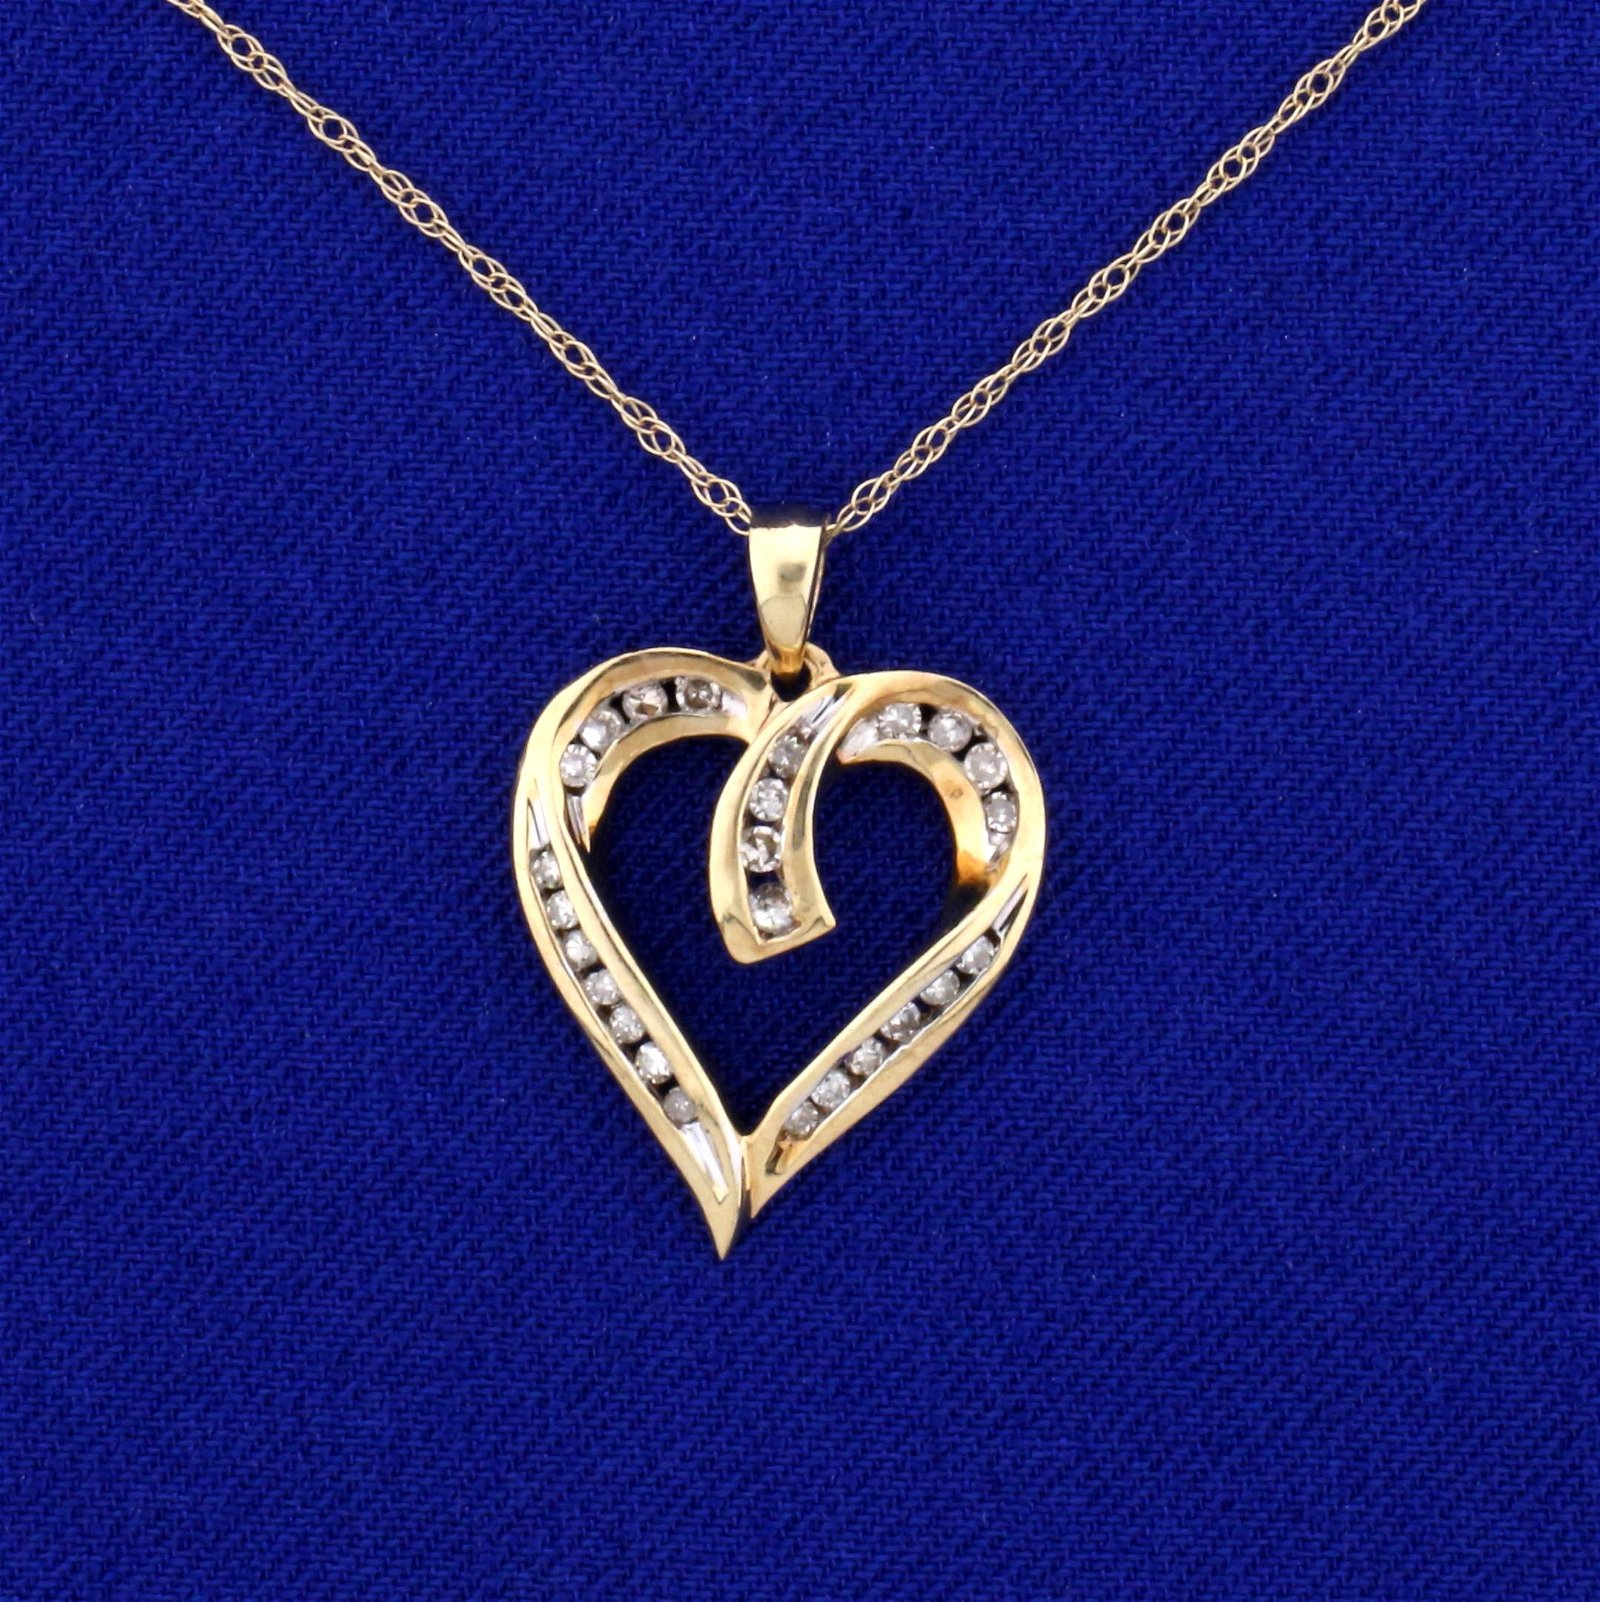 1/4ct TW Diamond Heart Pendant with Chain in 10k and